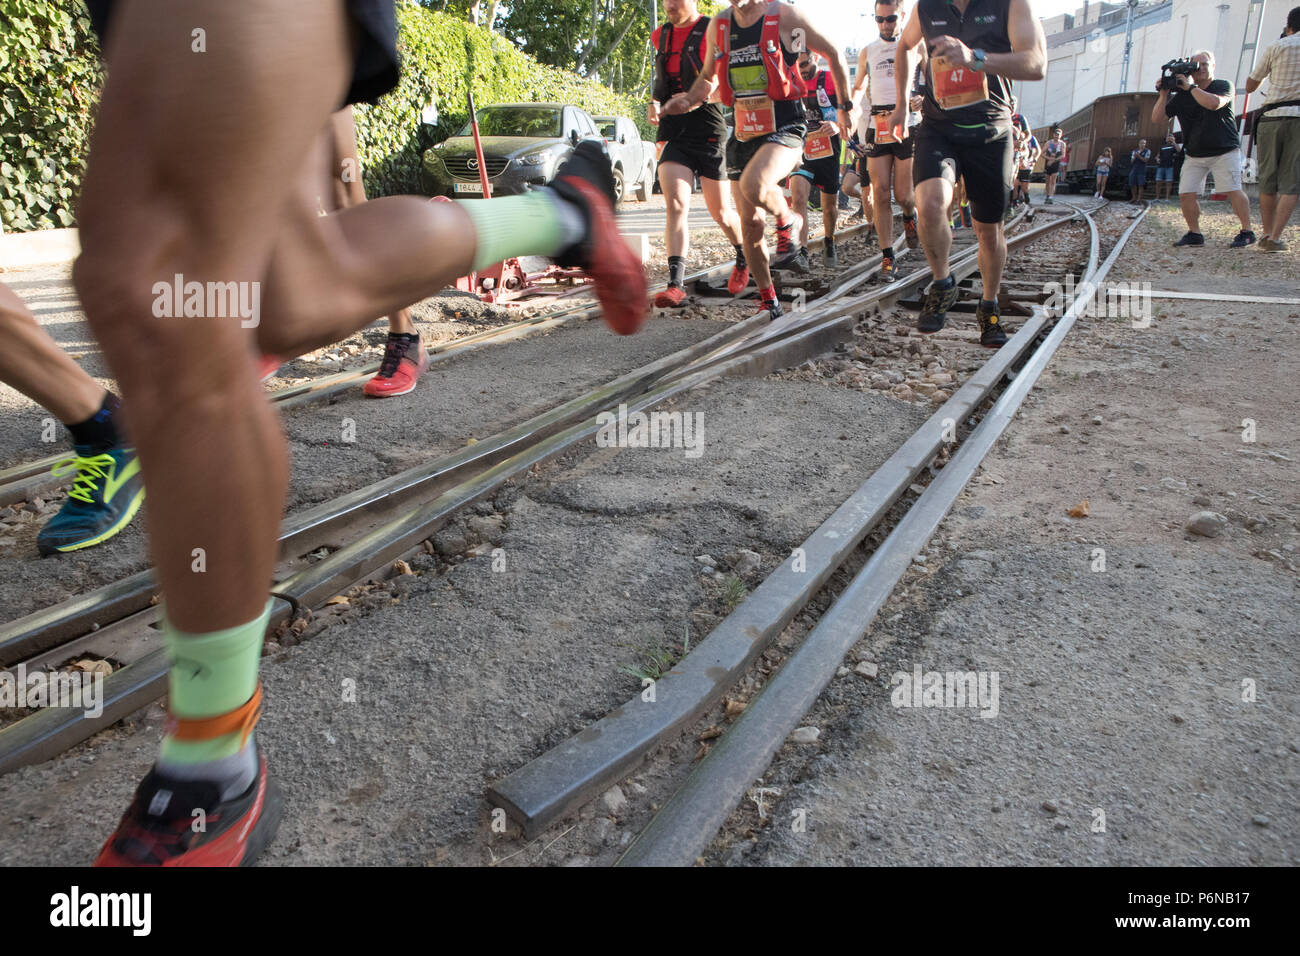 Group of runners male running in 'The iron way' from Palma de Mallorca to Soller, train railway race, Balearic islands Spain - Stock Image